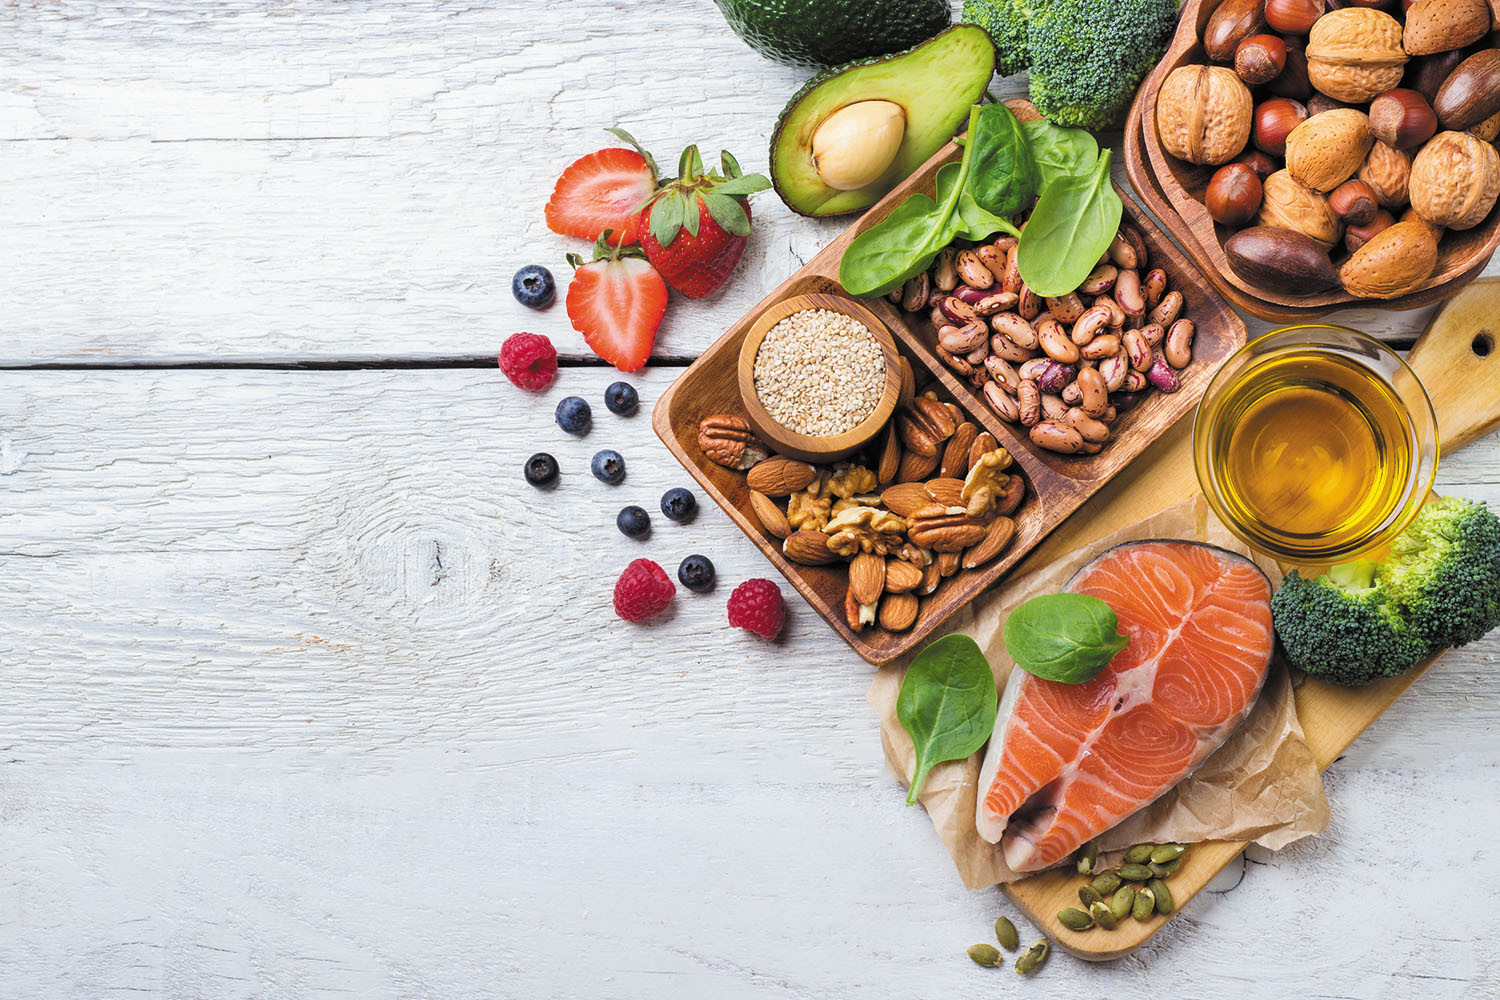 diets influence on health